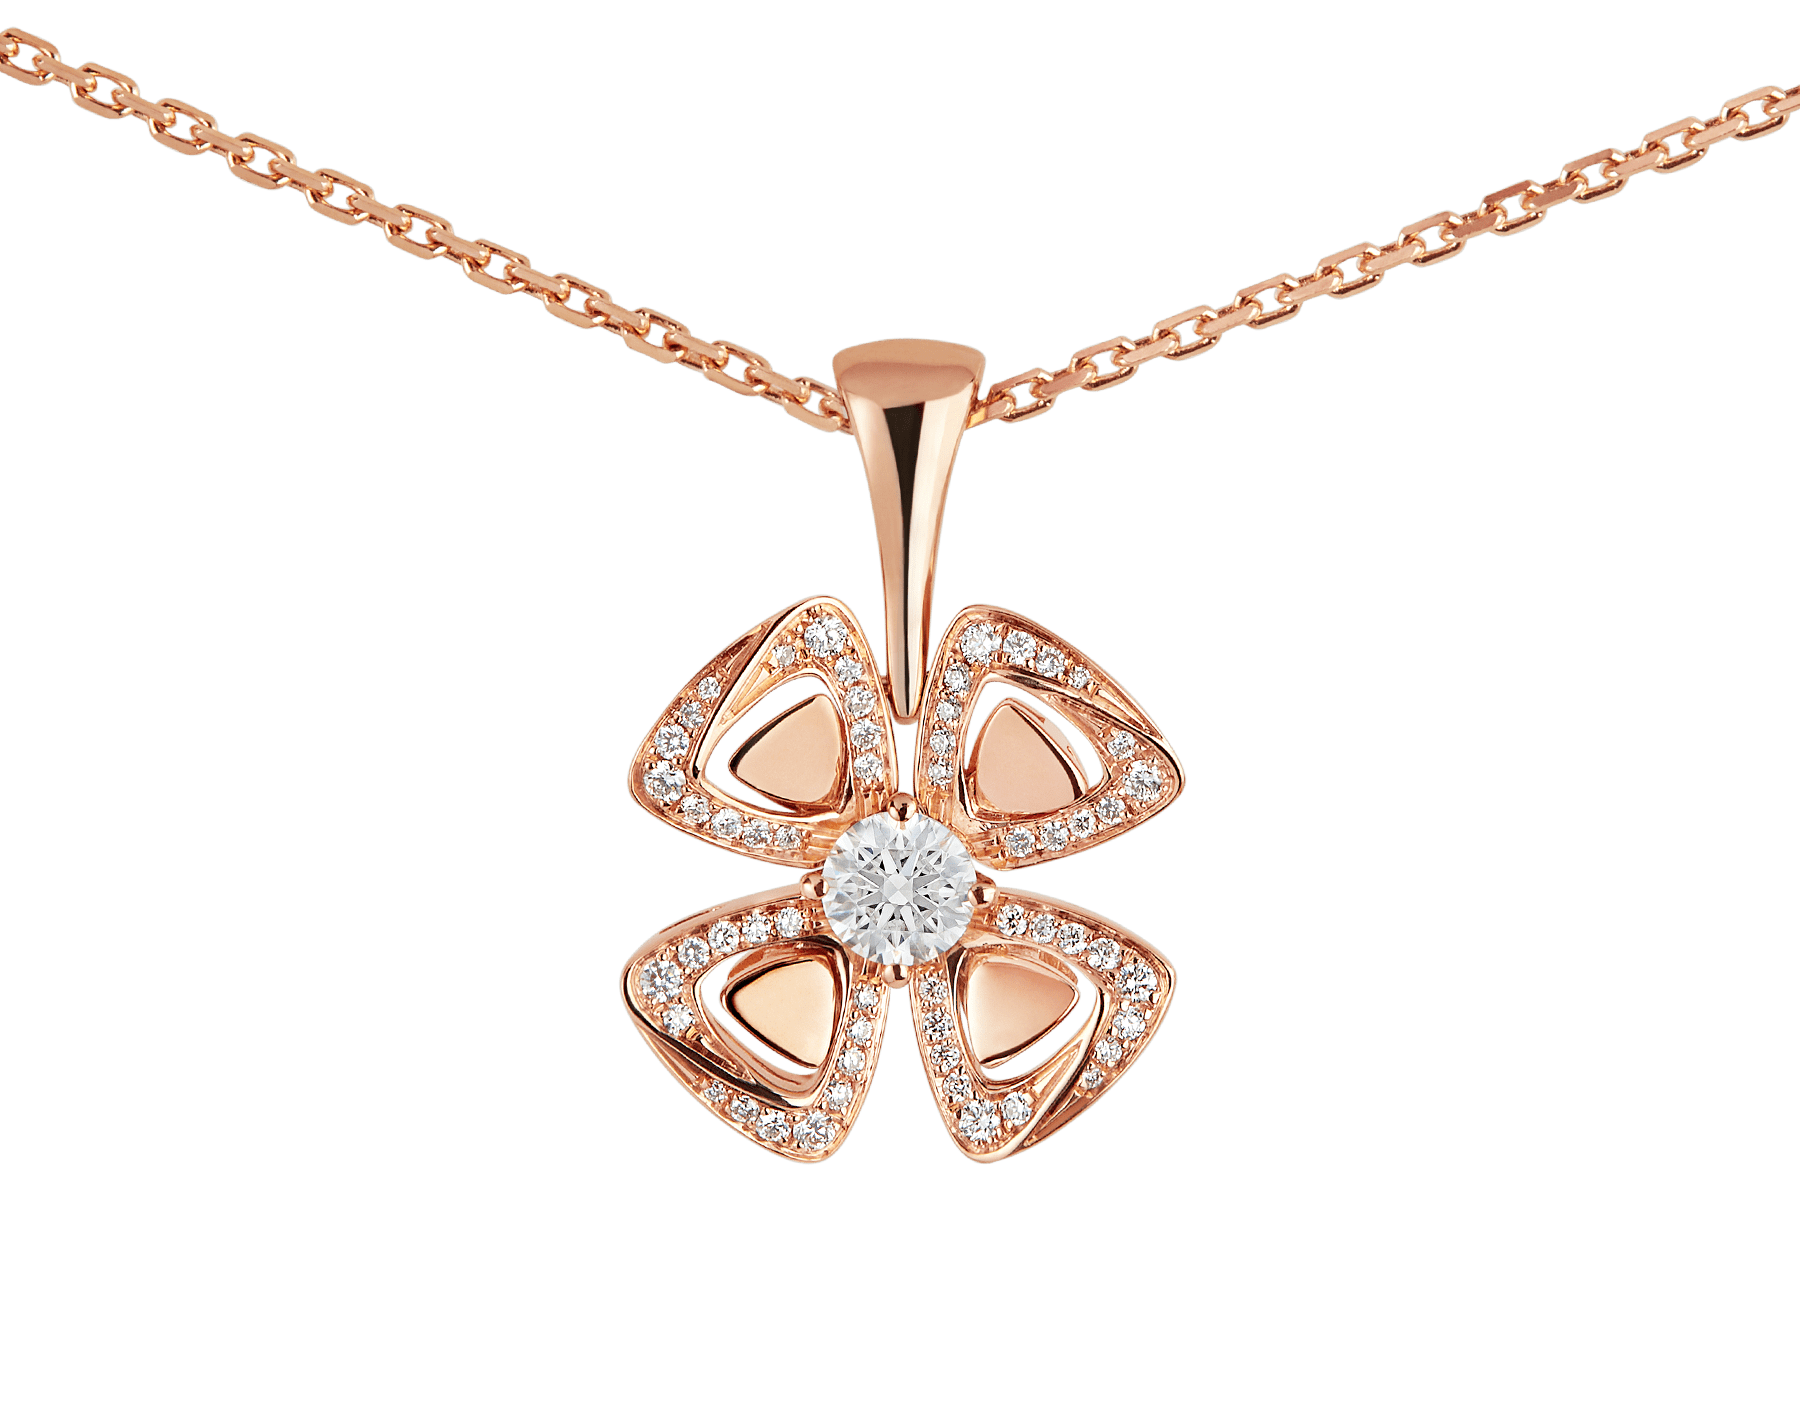 Fiorever 18 kt rose gold necklace set with a central diamond (0.20 ct) and pavé diamonds (0.18 ct) 356223 image 3